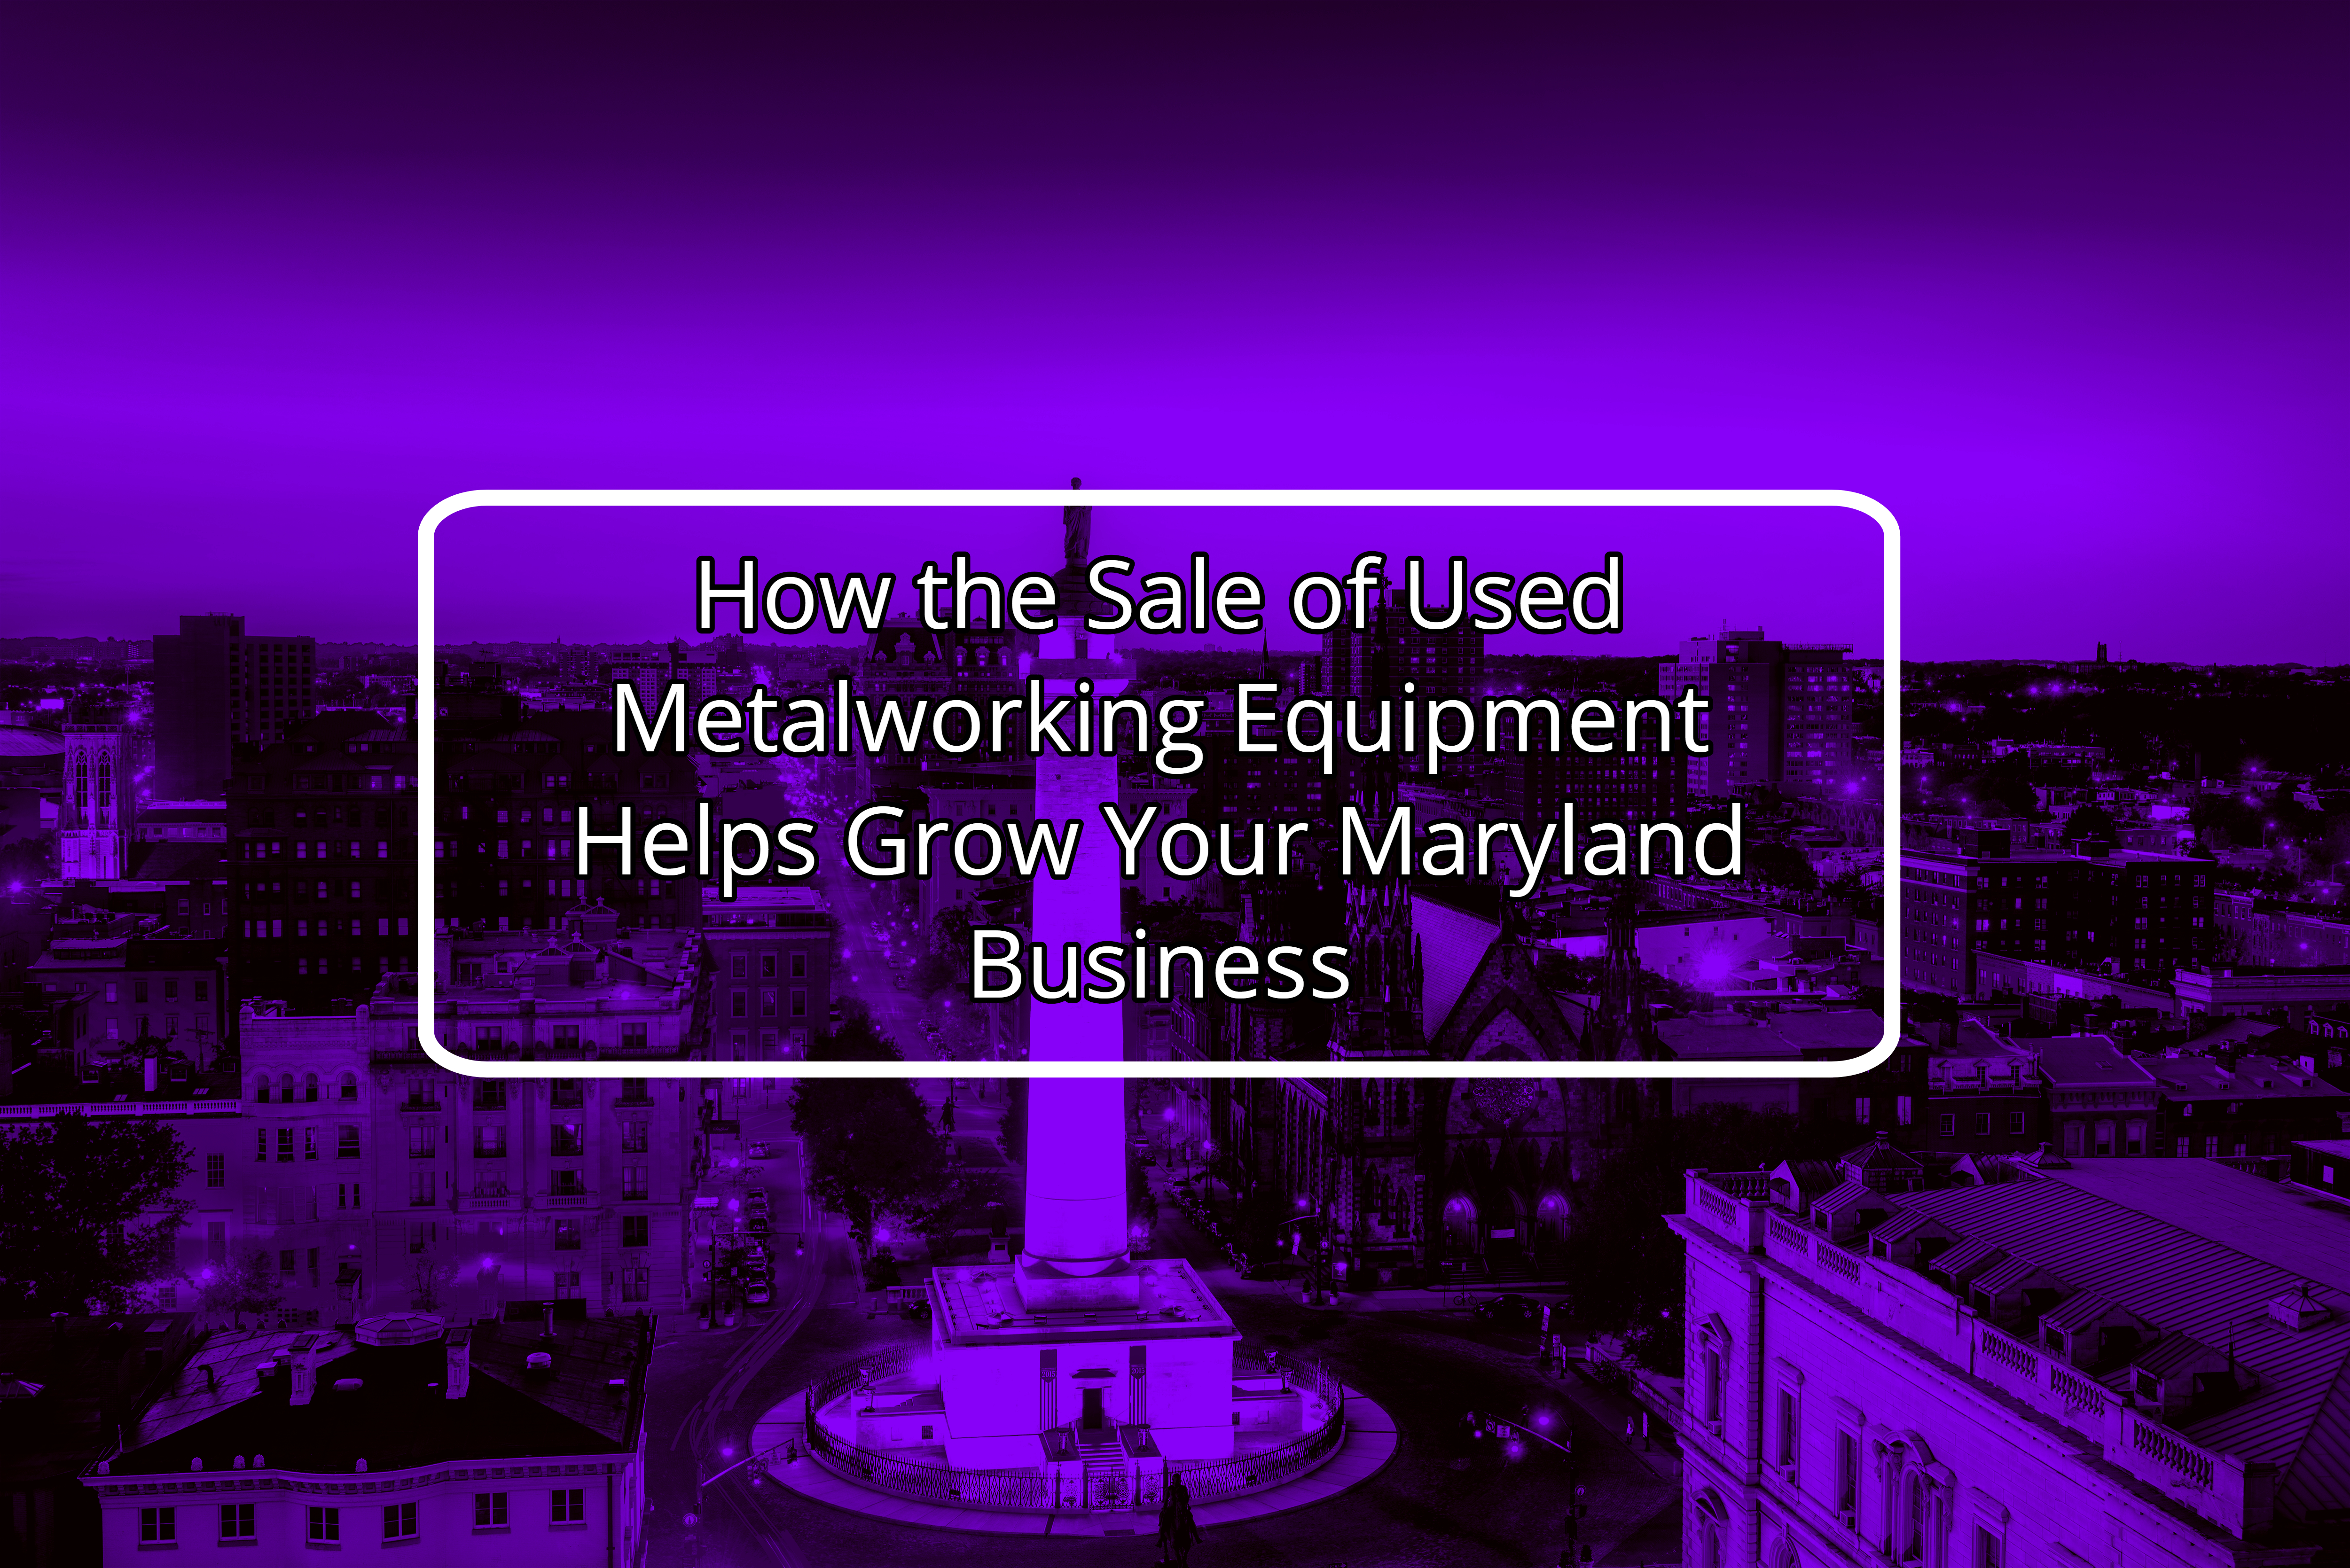 How to Use the Sale of Used Metalworking Equipment to Grow Your Maryland Business